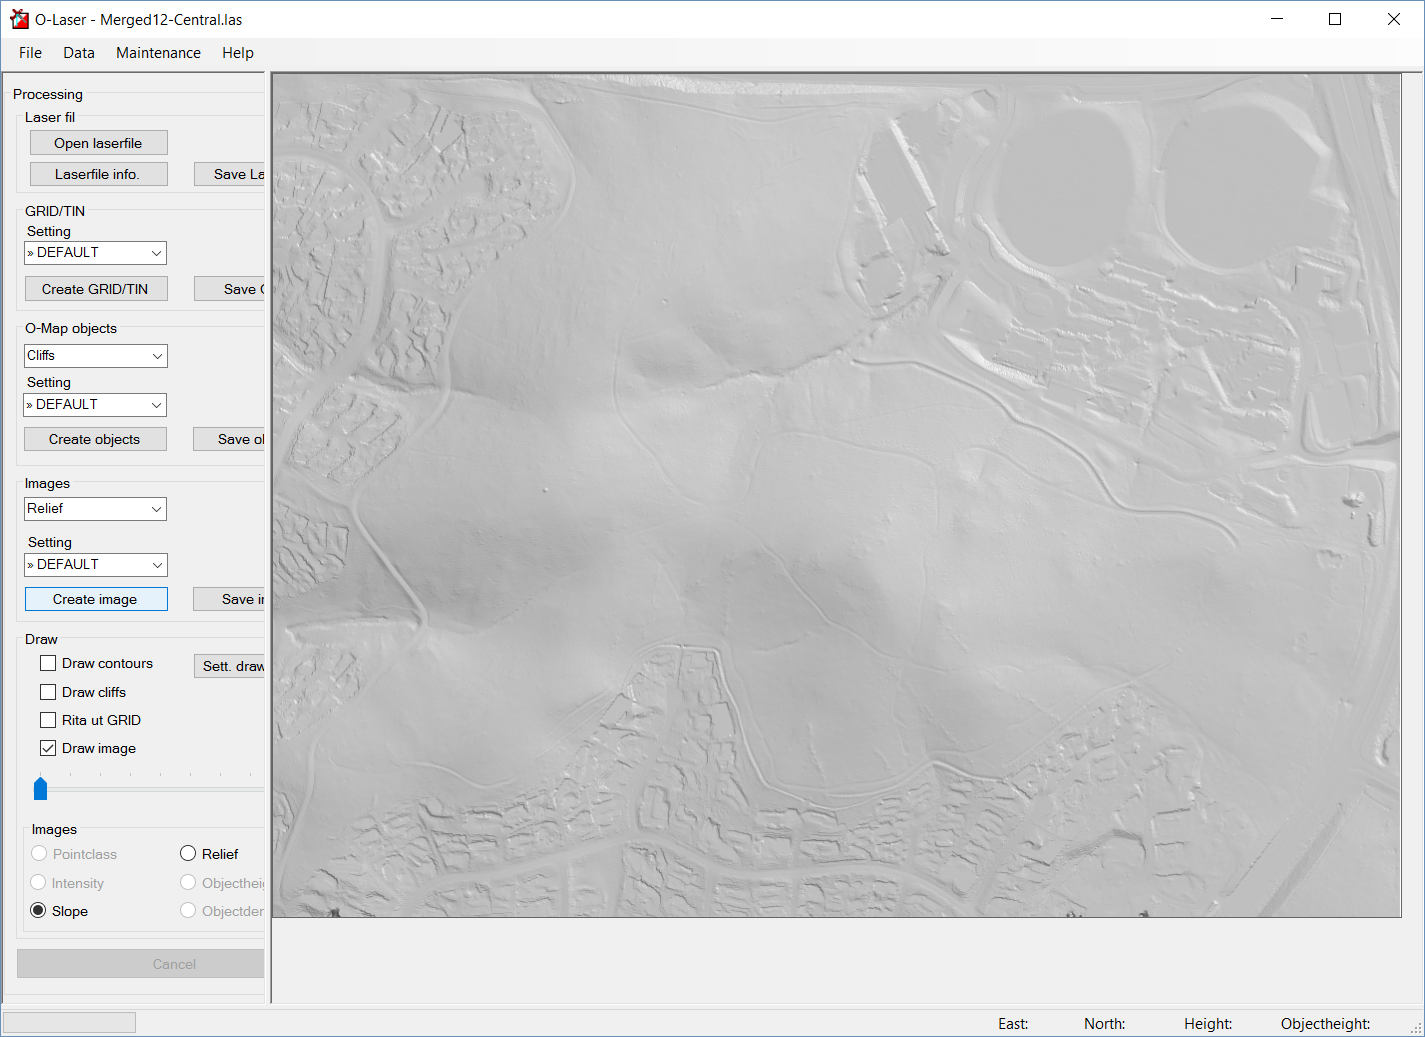 Generating slope and relief images with OL Laser - Greg